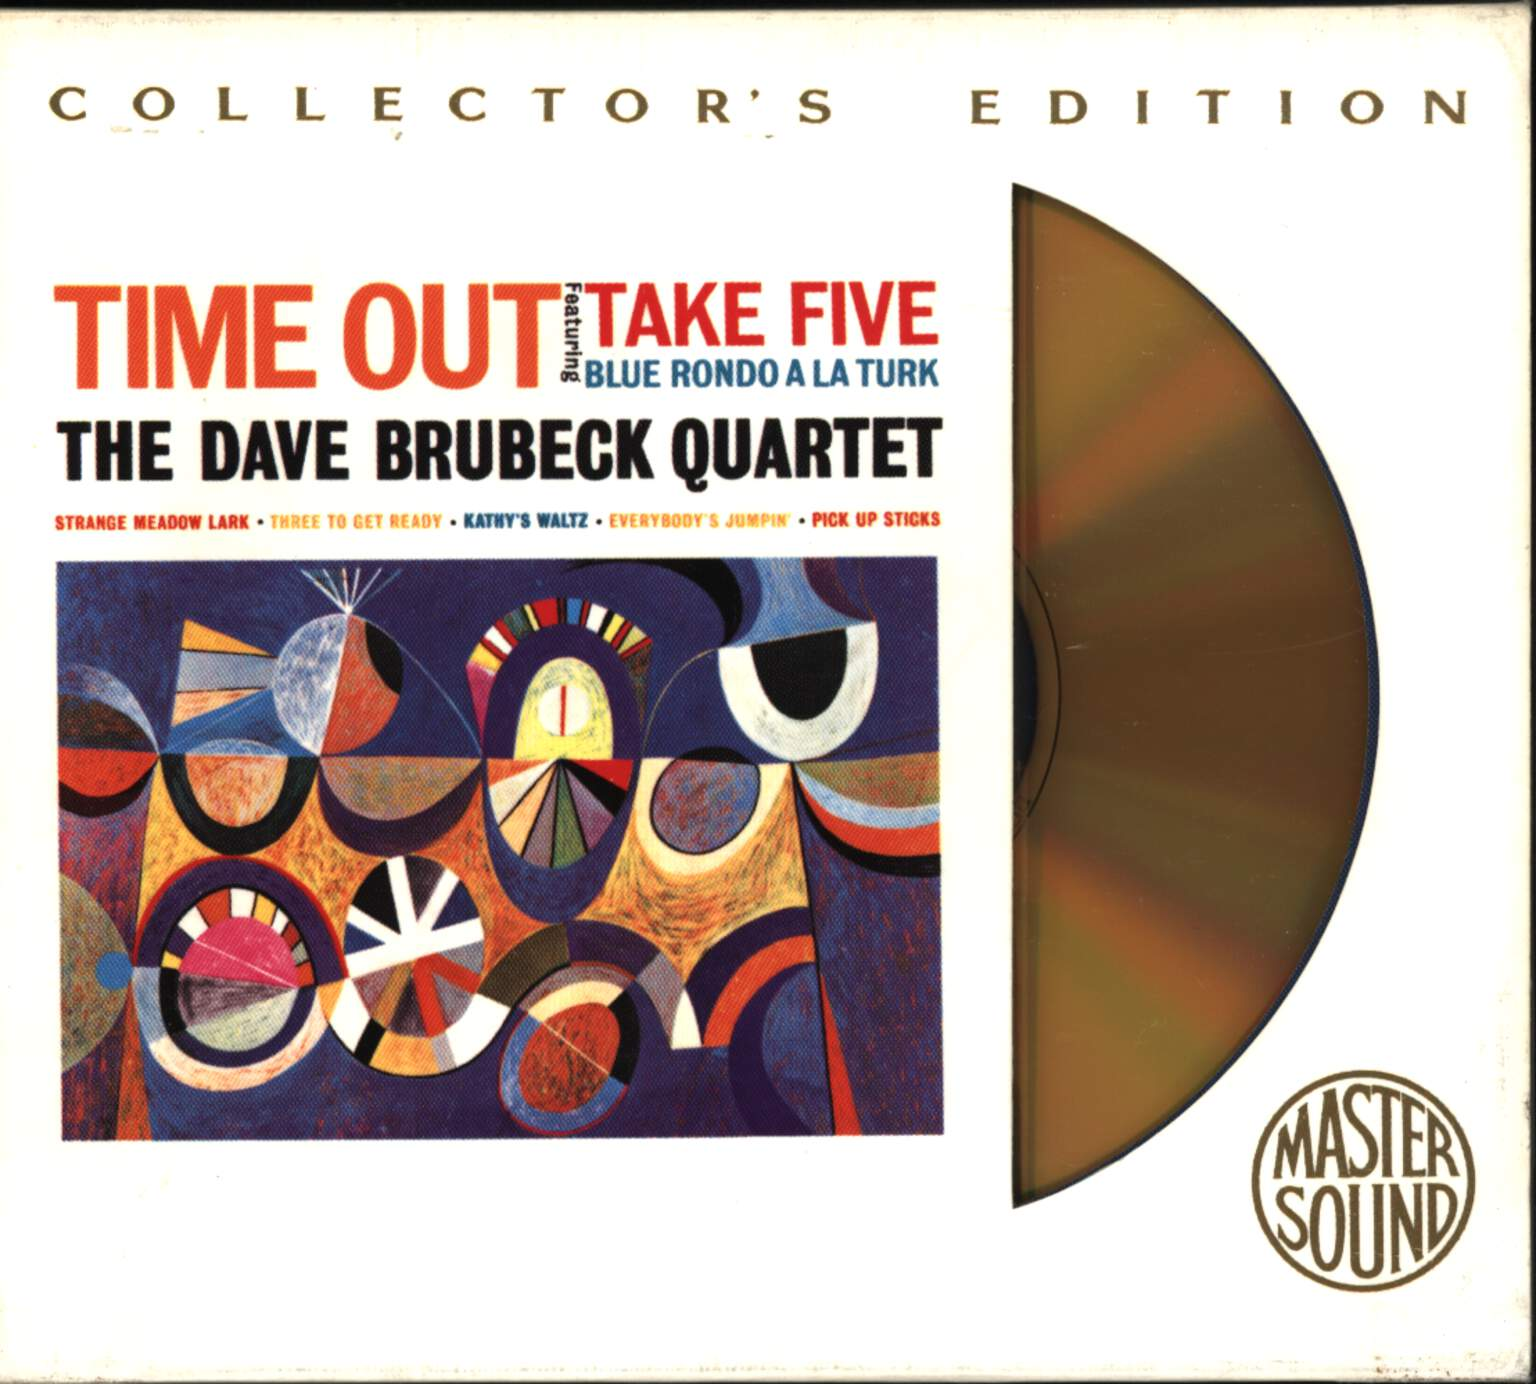 The Dave Brubeck Quartet: Time Out, CD